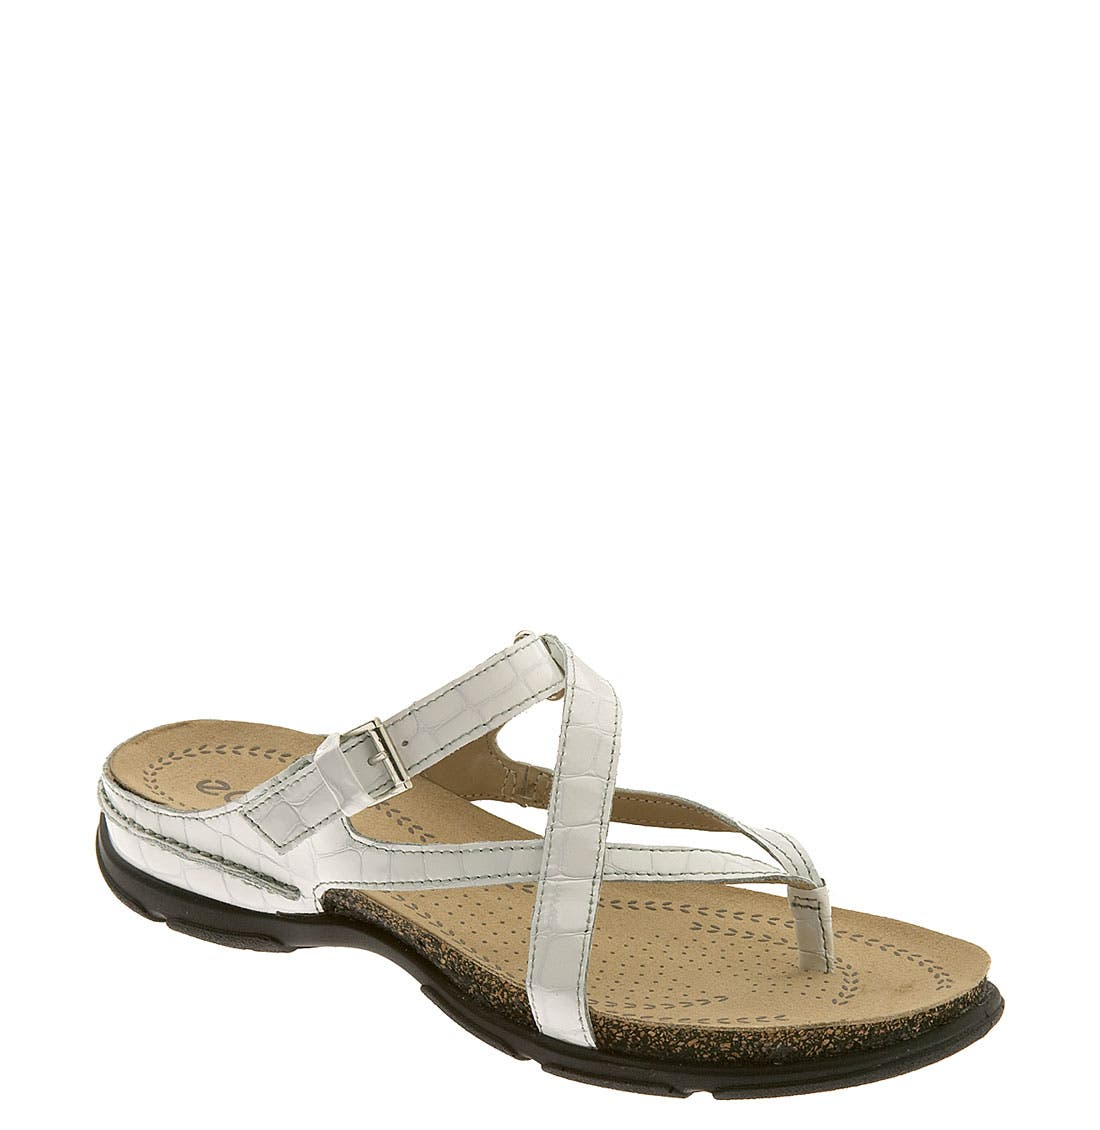 Alternate Image 1 Selected - ECCO 'Living' Thong Sandal